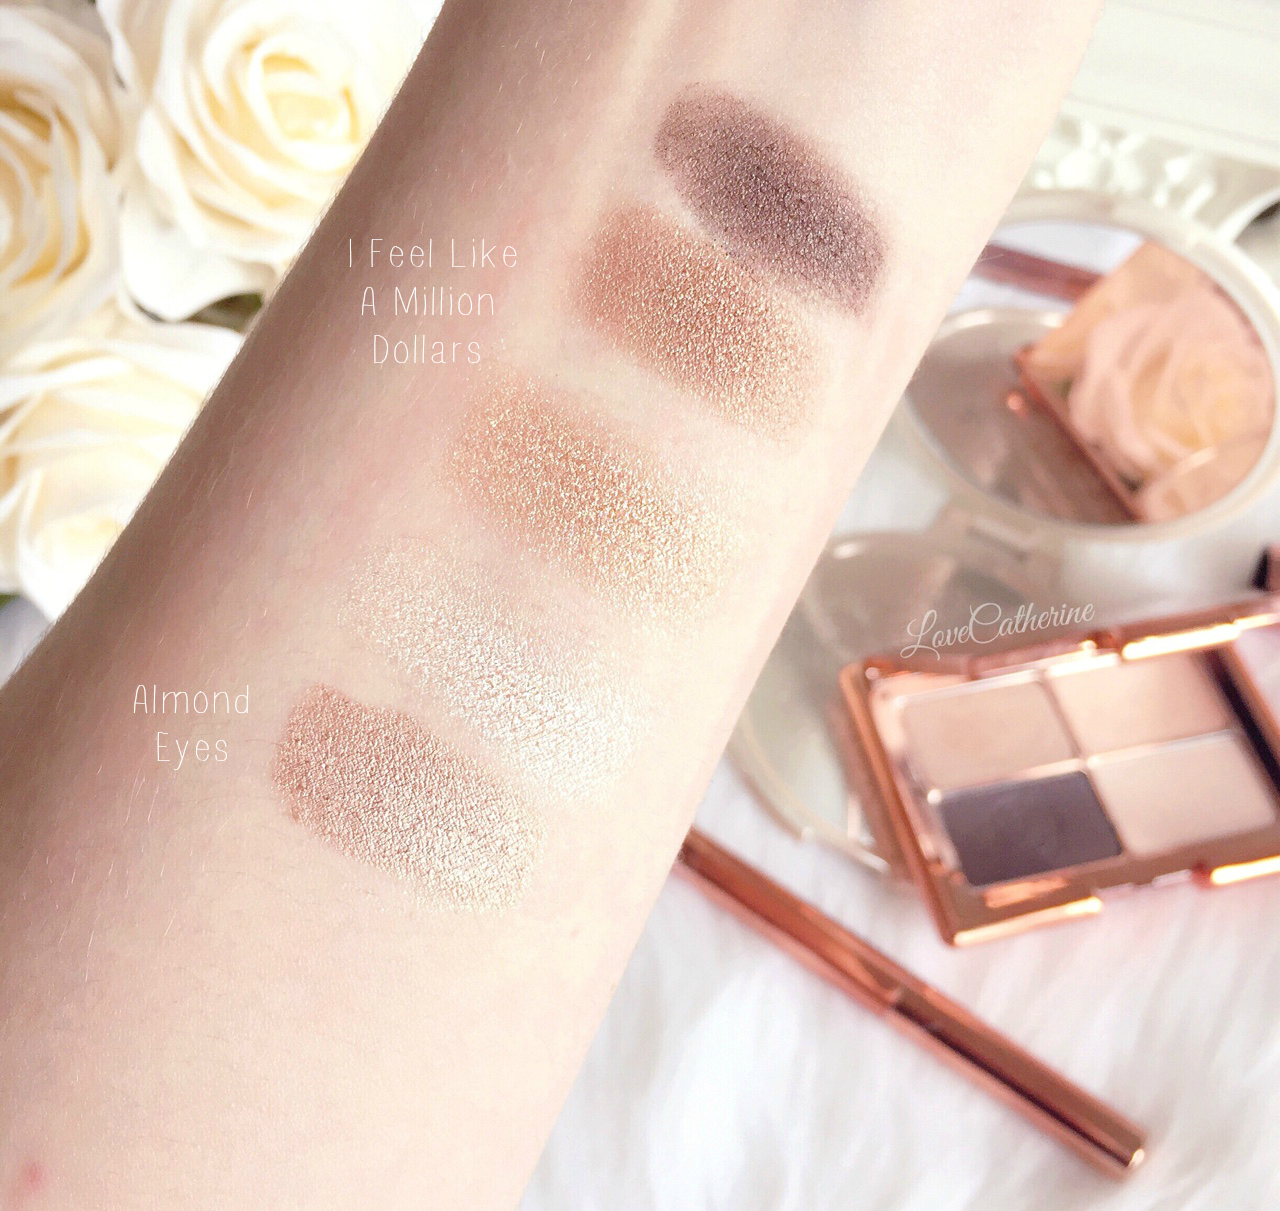 Rosie for Autograph | Swatches, I Feel Like A Million Dollars & Almond Eyes